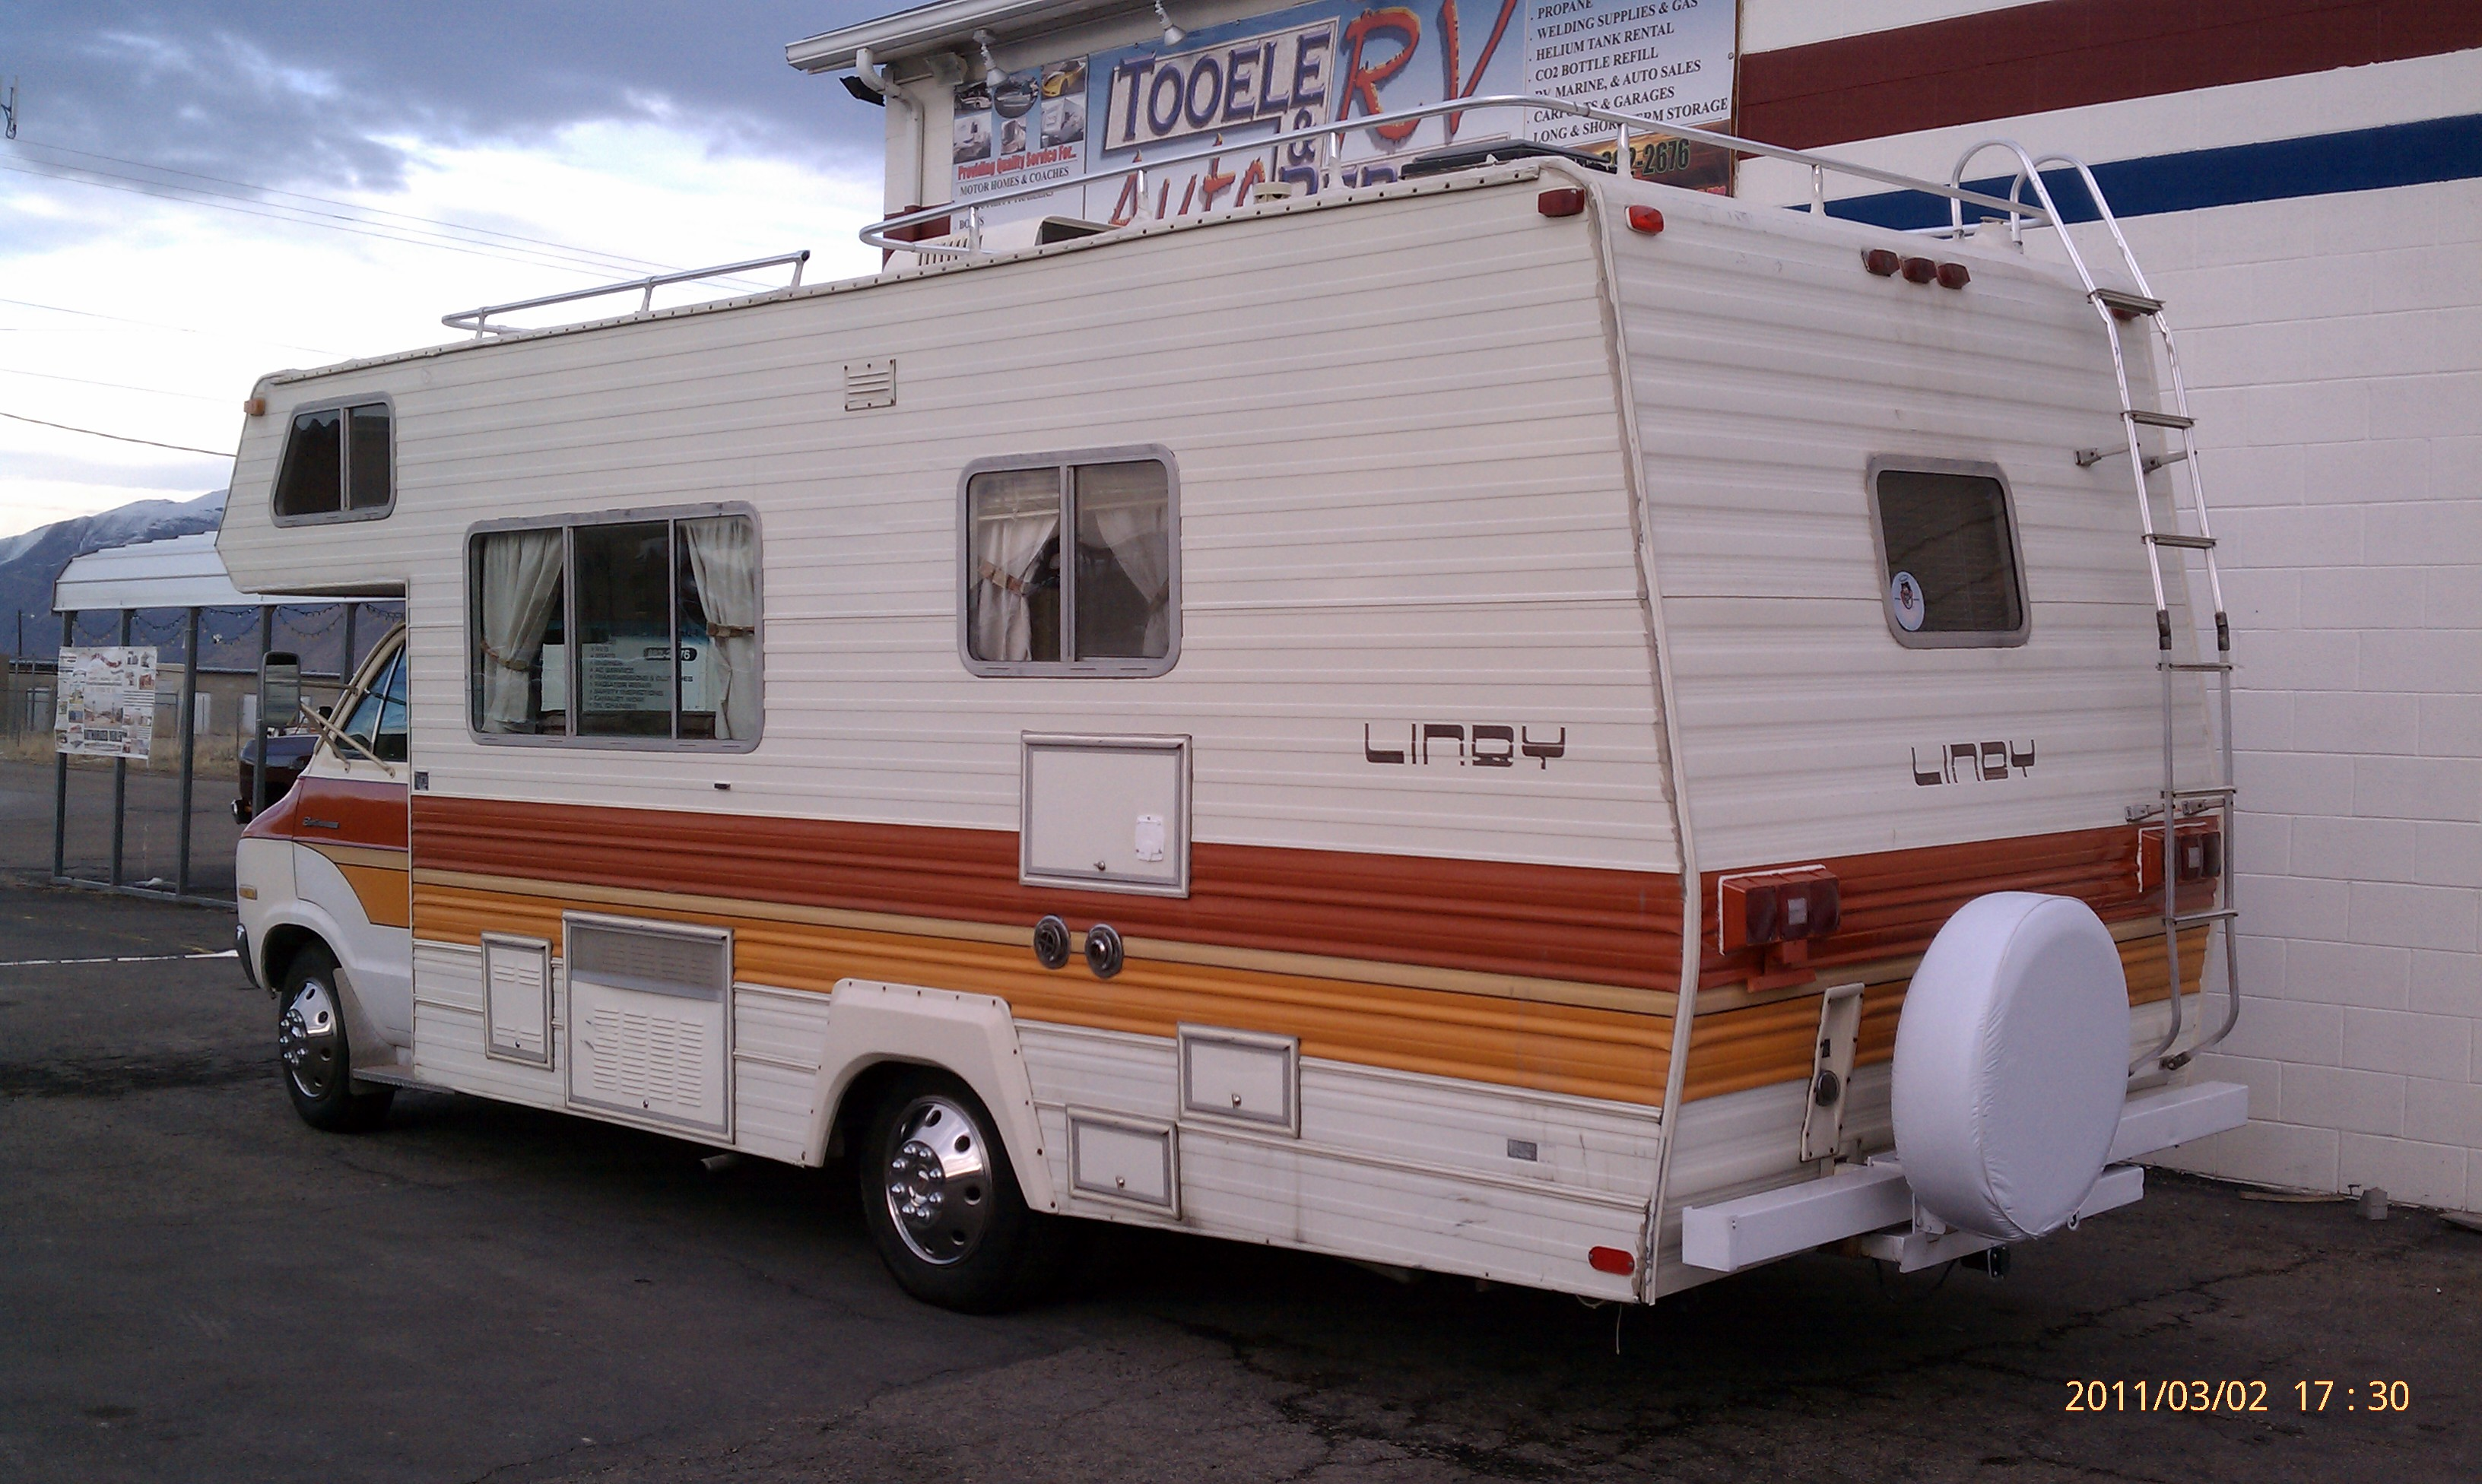 1978 Dodge Midas Motorhome http://www.zuoda.net/search.aspx?q=dodge+sportsman&offset=200